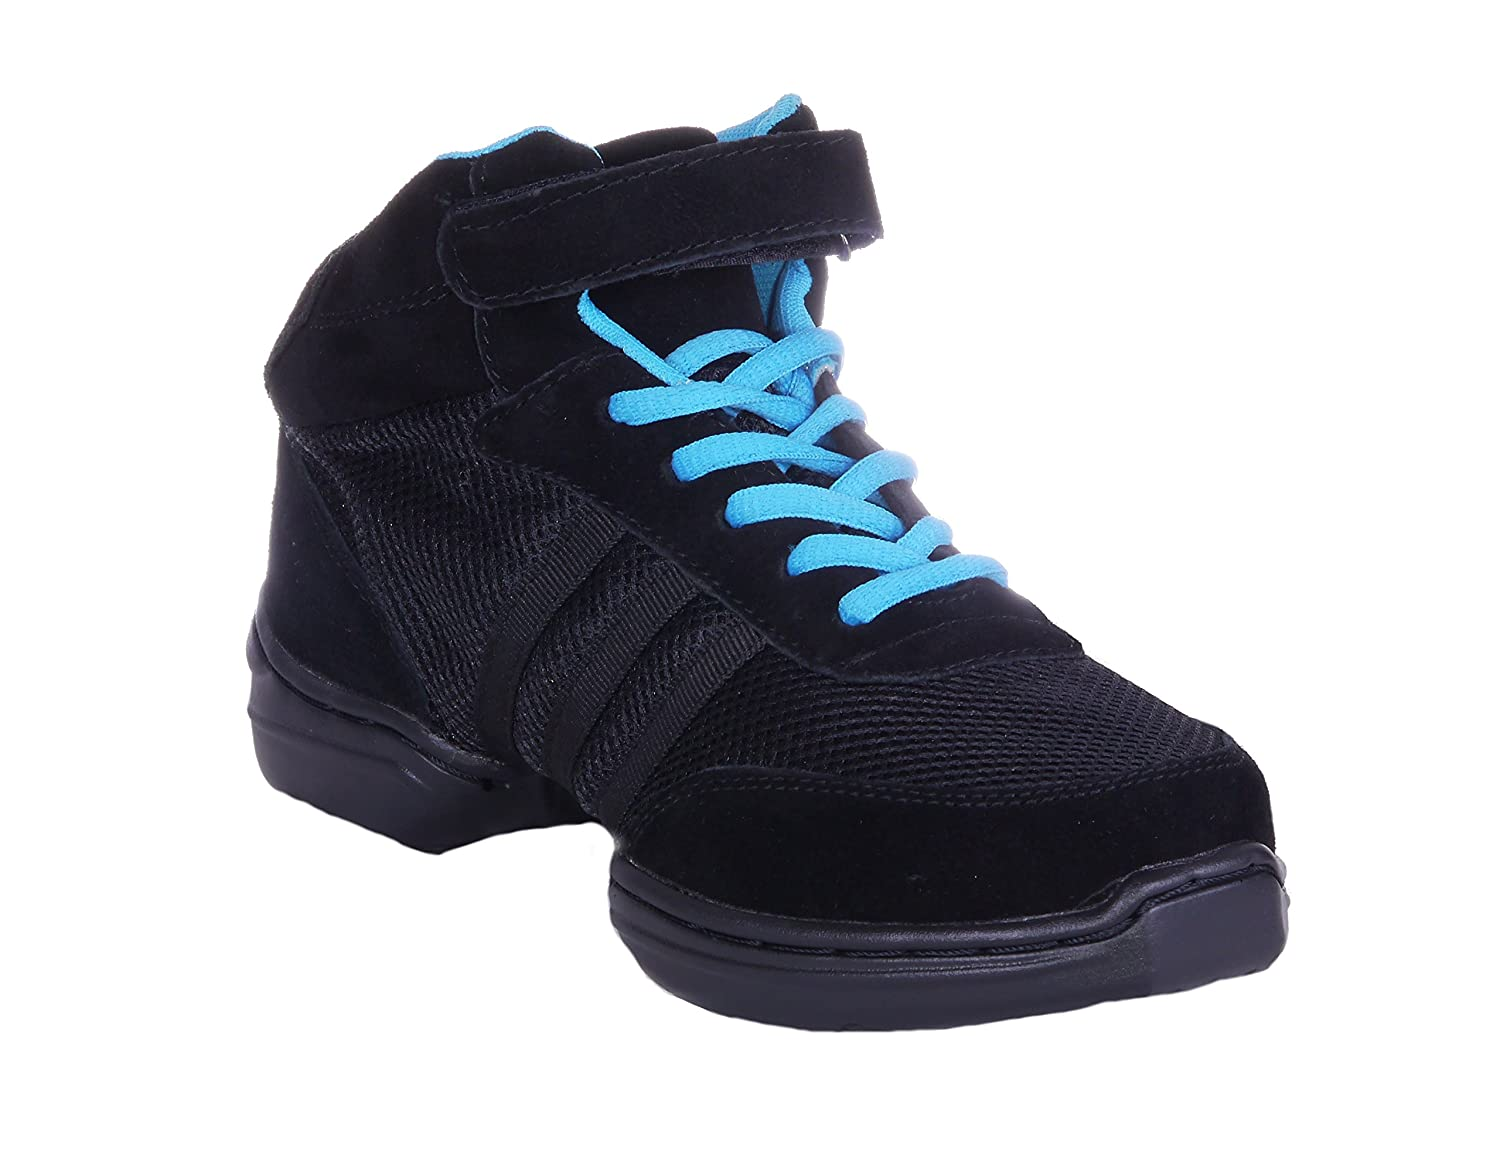 1be3466e1b1 durable service Nene's Collection Women's Dance Fitness Shoes High Top  Sneakers (5.5, Black)